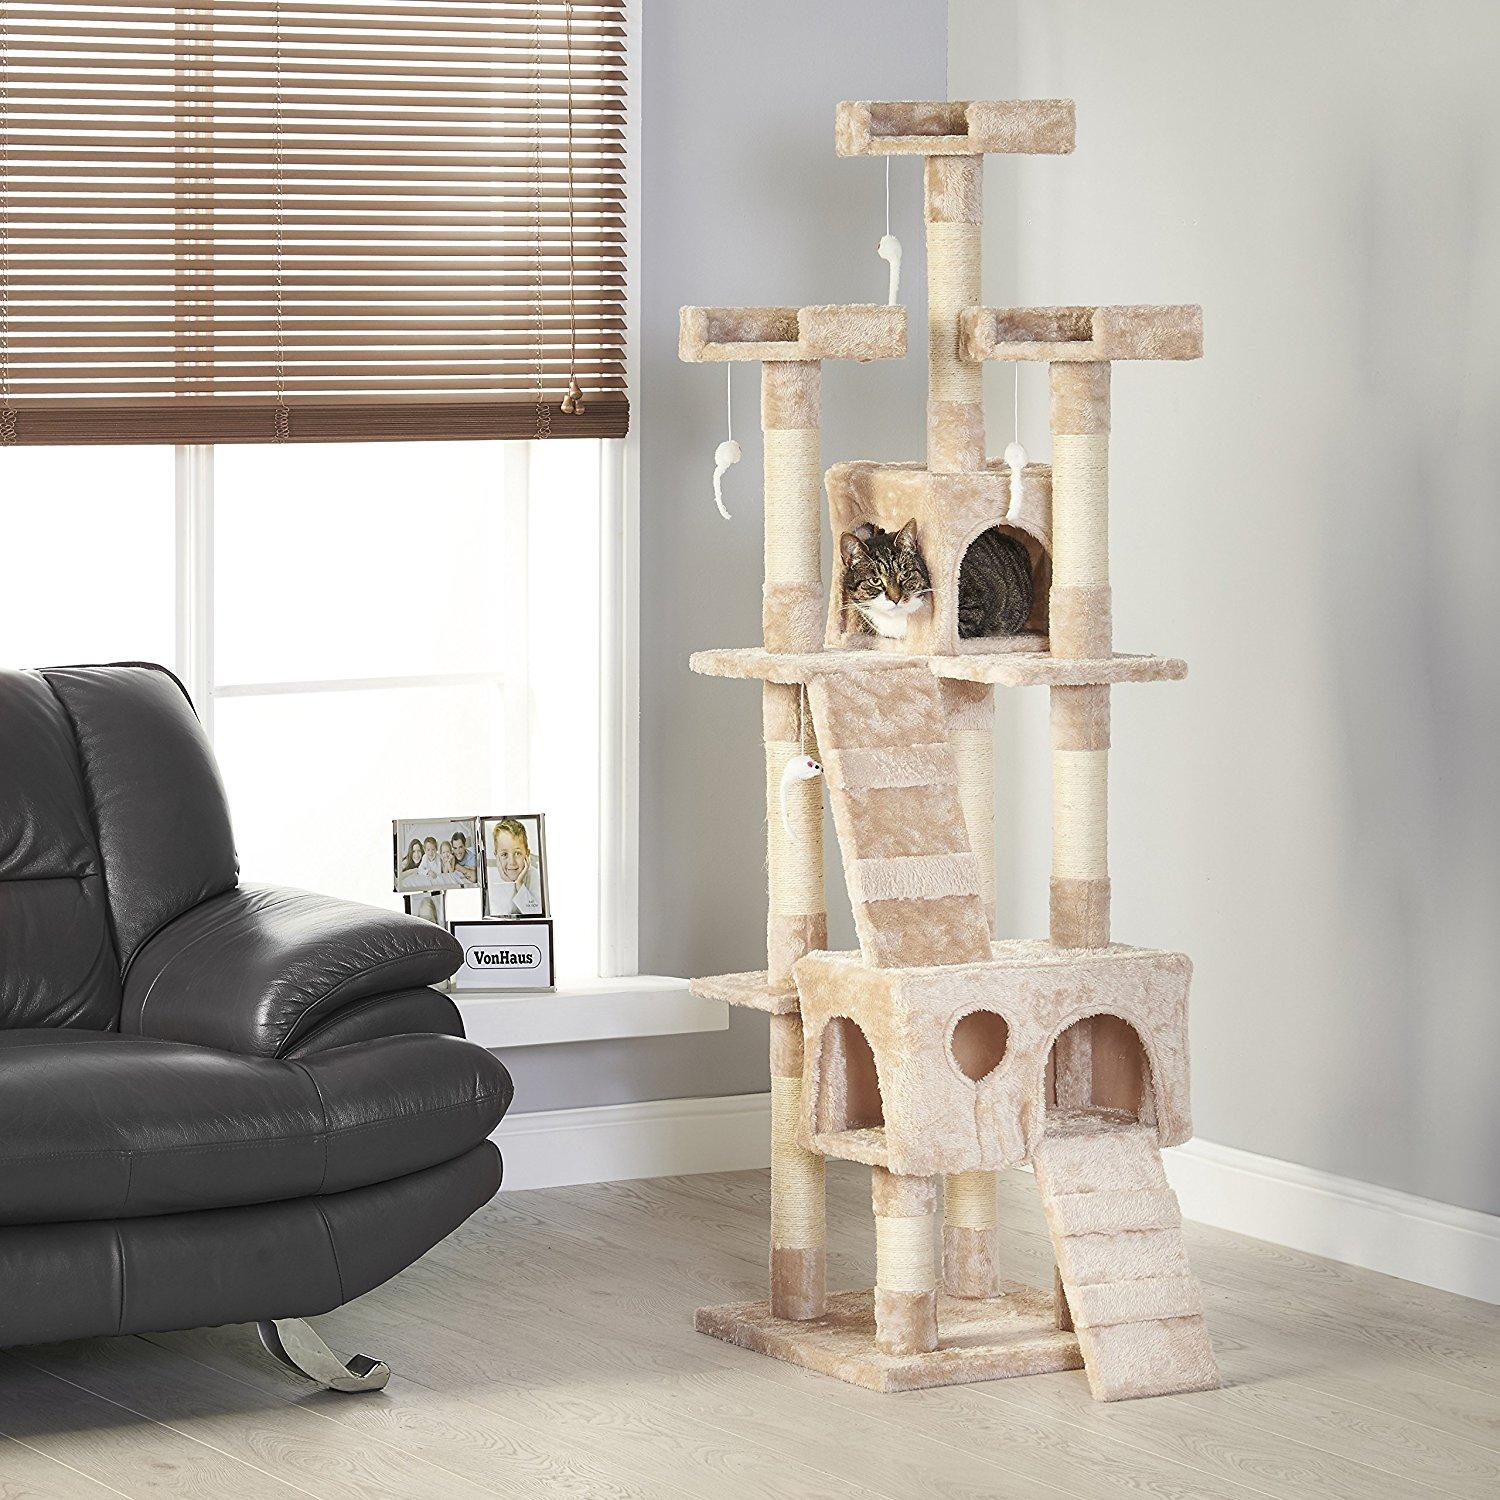 170cm Biege Cat / Kitten Treehouse - Scratch Post Condo By Warehousesggroup.